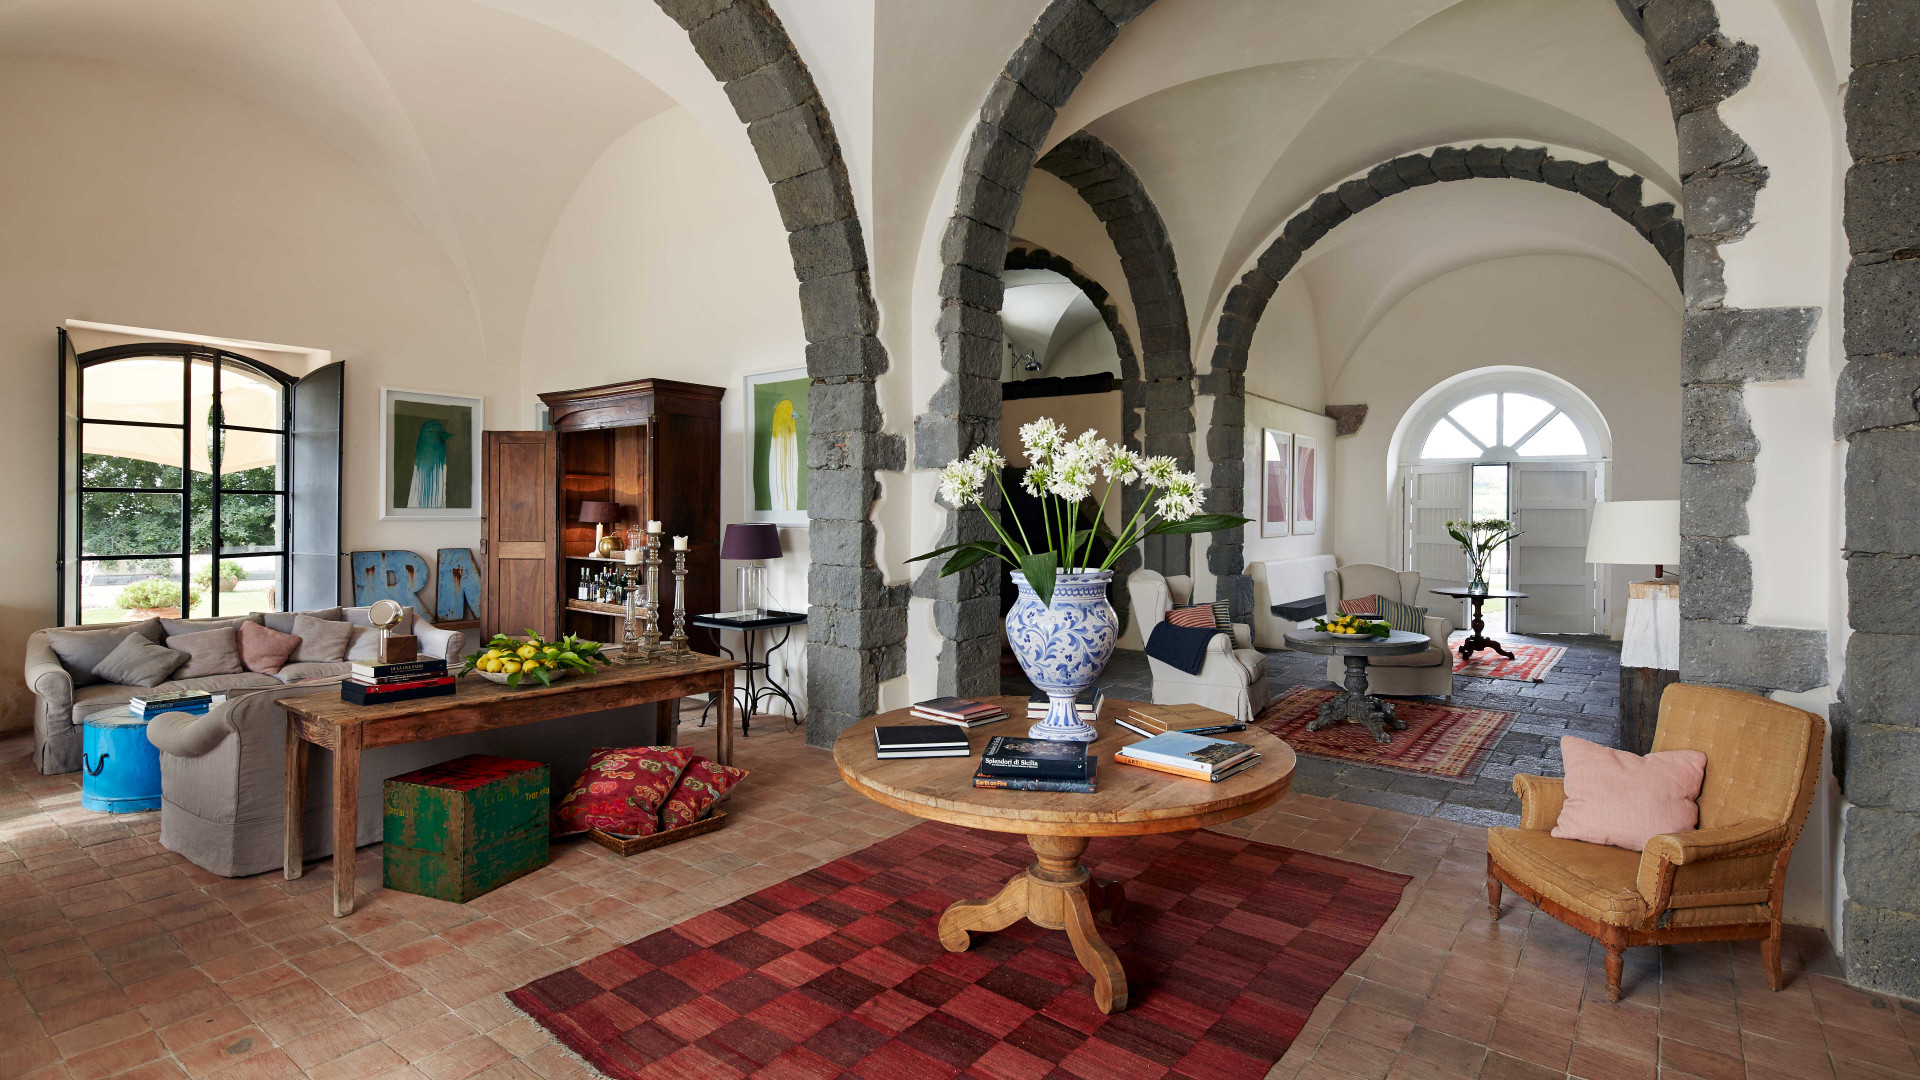 Rocca delle Tre Contrade's spacious and light interior